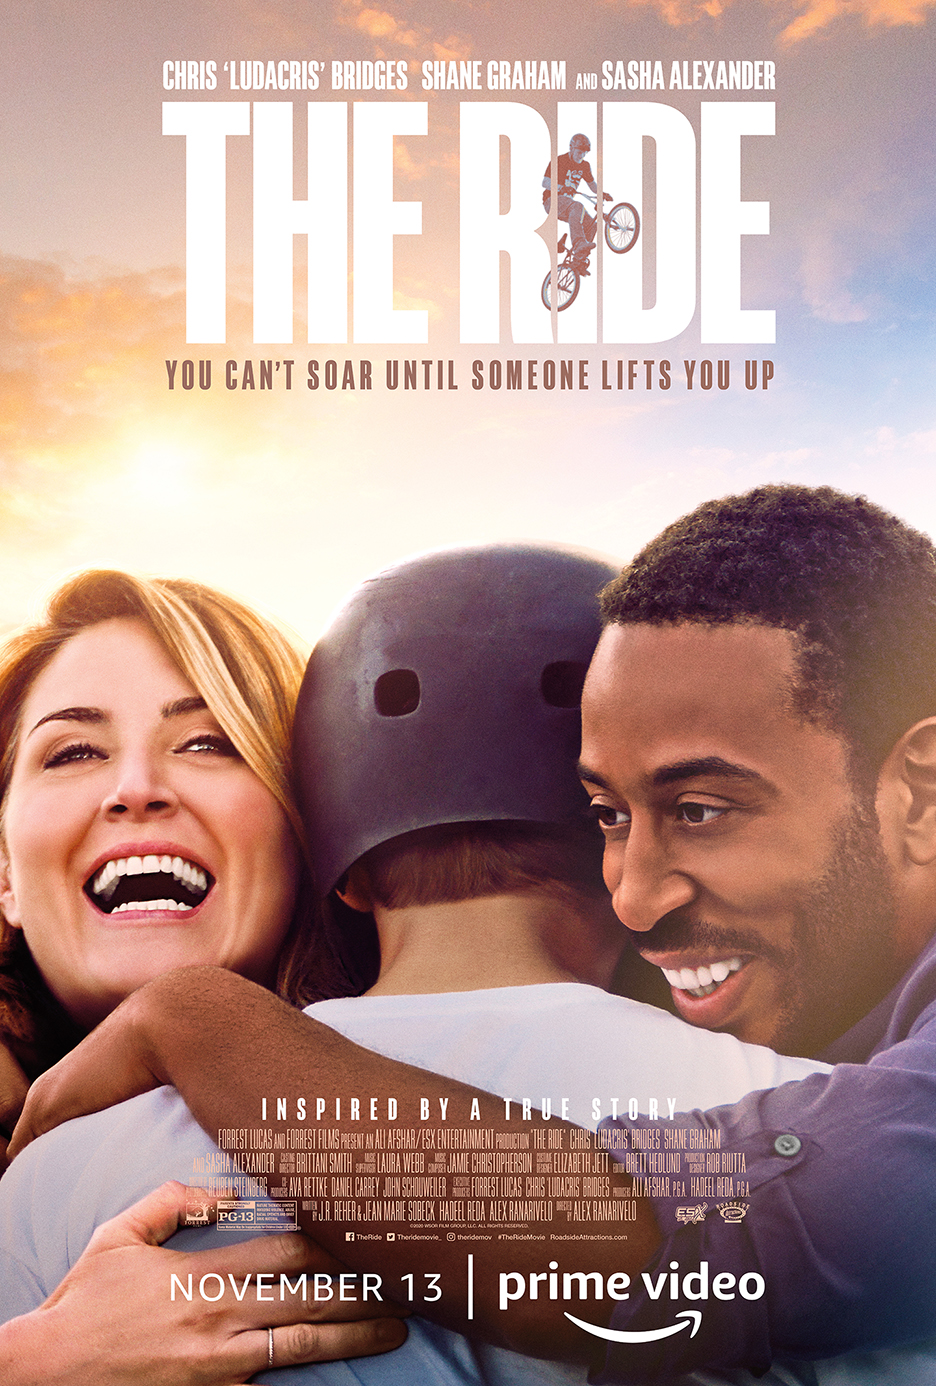 Download The Ride (2018) WebRip 720p Full Movie [In English] With Hindi Subtitles Full Movie Online On 1xcinema.com